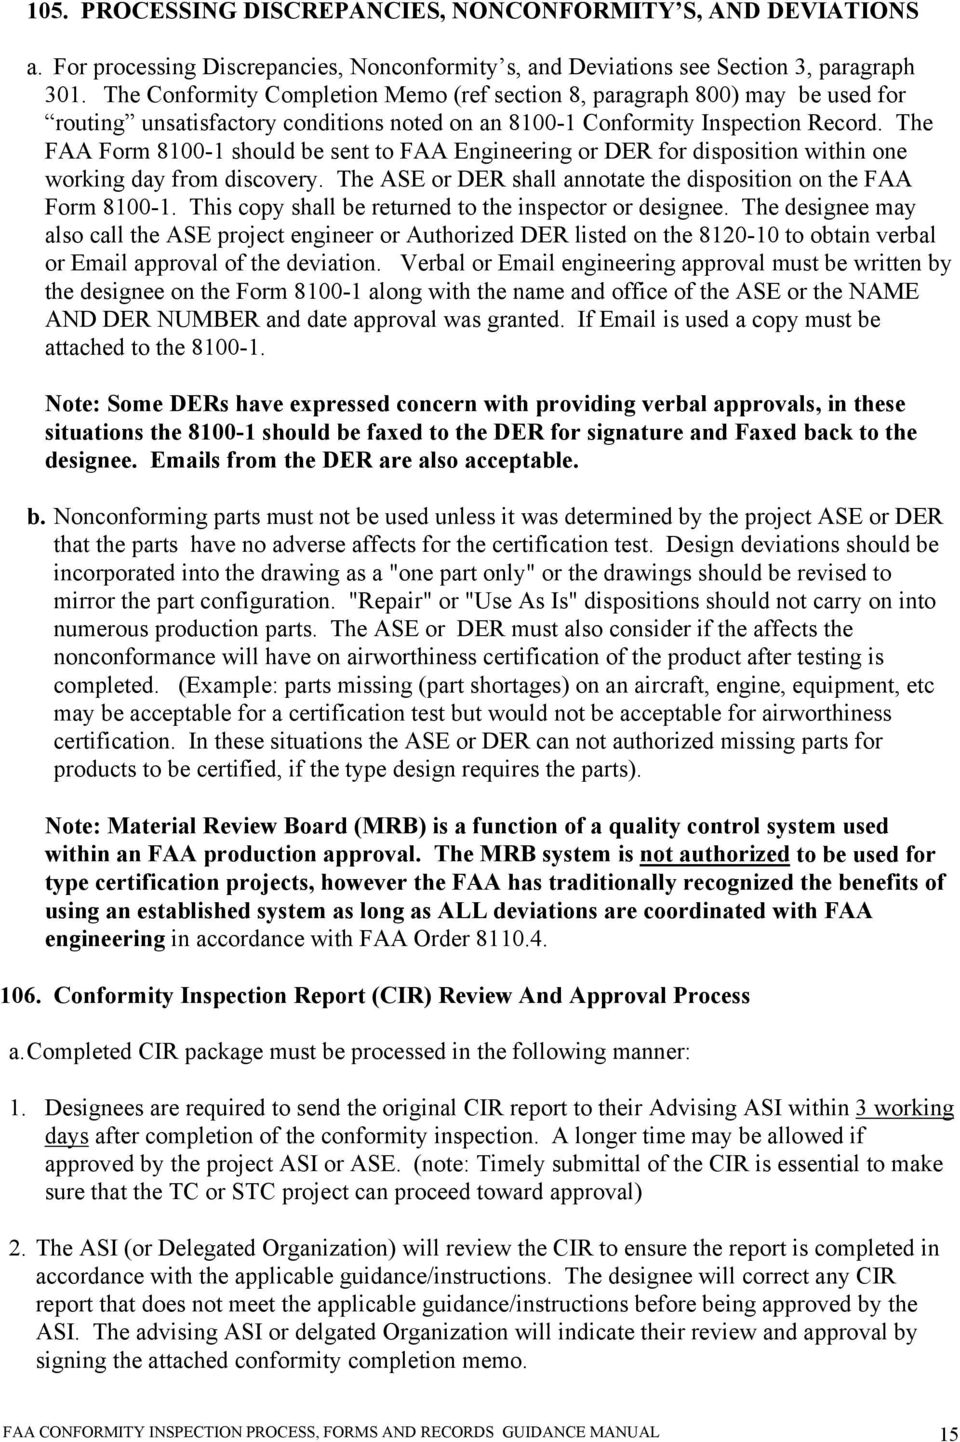 Faa conformity inspection process forms and records guidance the faa form 8100 1 should be sent to faa engineering or der for disposition platinumwayz